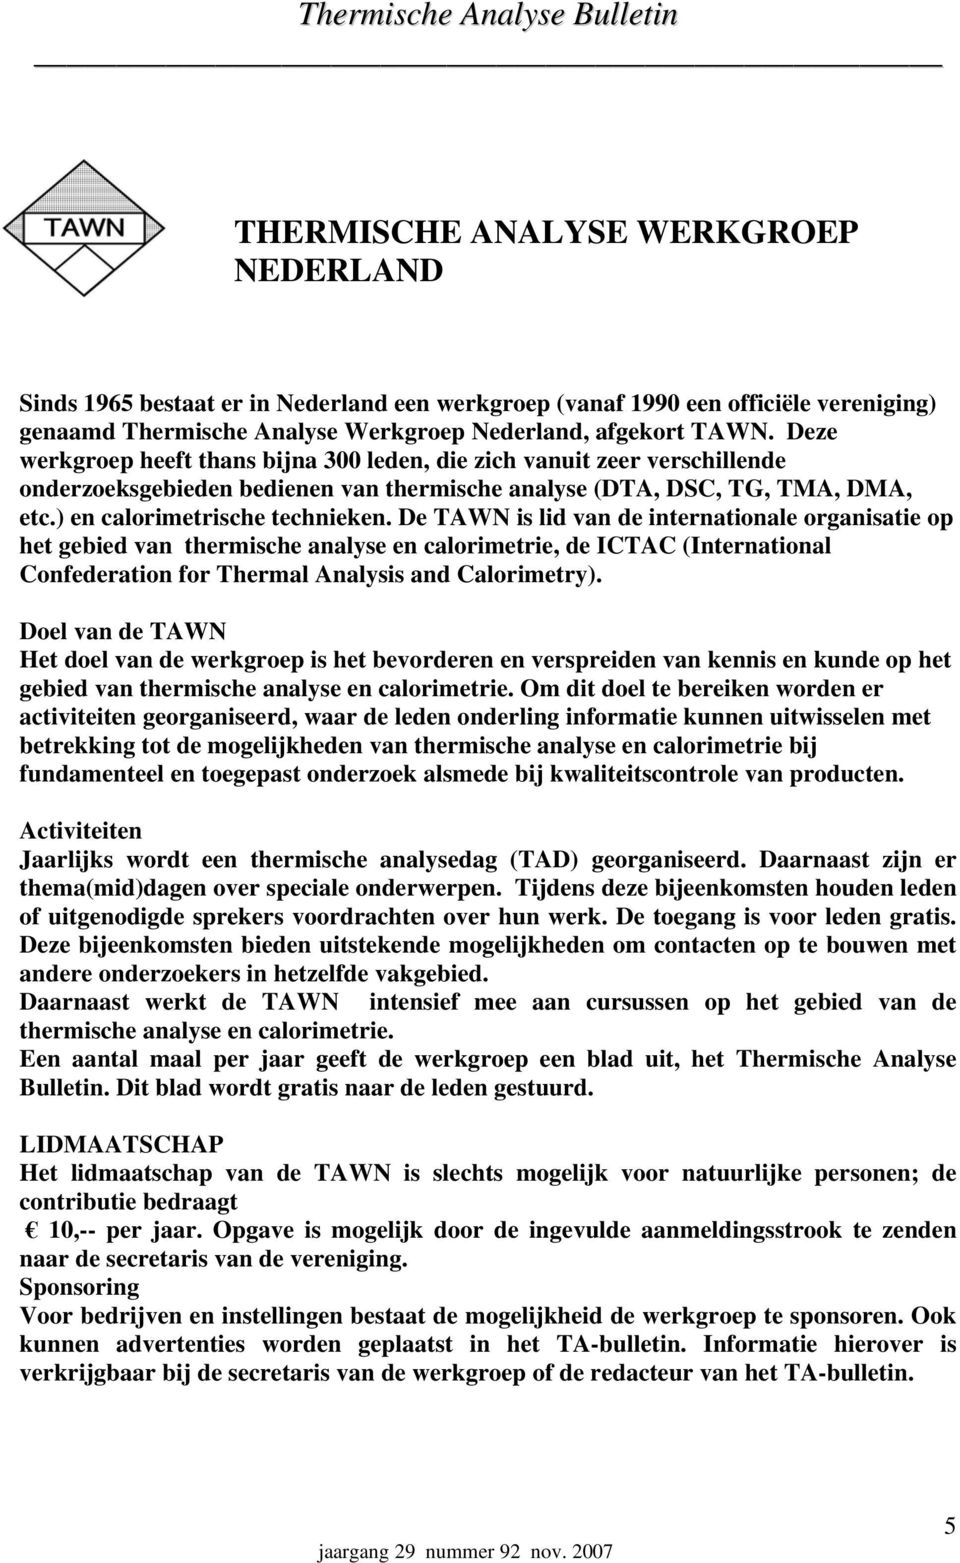 De TAWN is lid van de internationale organisatie op het gebied van thermische analyse en calorimetrie, de ICTAC (International Confederation for Thermal Analysis and Calorimetry).